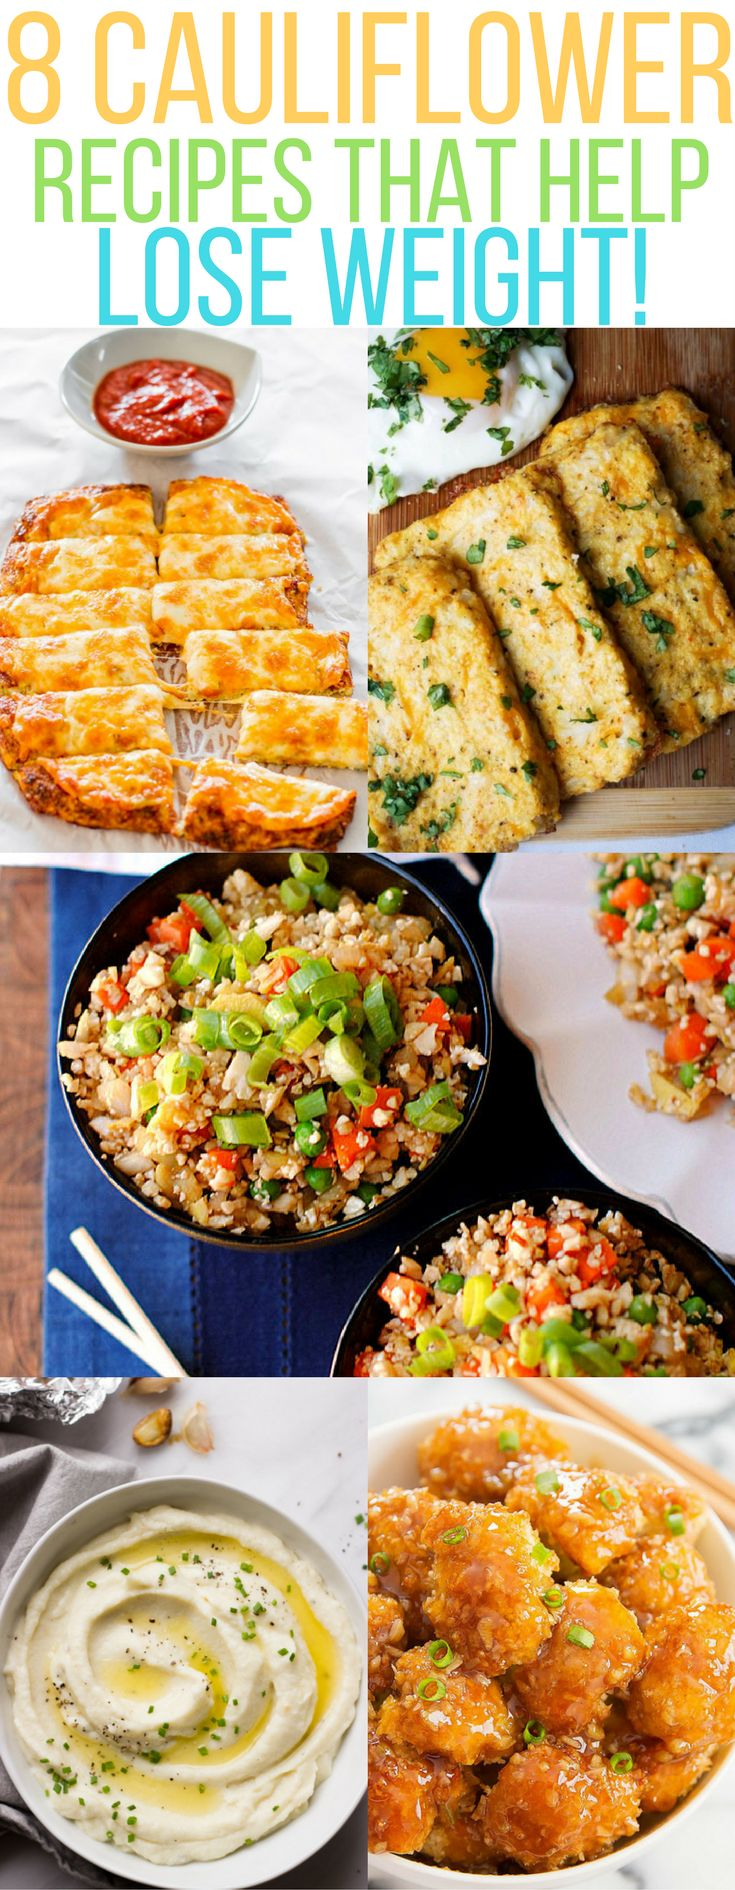 cauliflower recipes |low carb meals | cauliflower rice | cauliflower pizza | cauliflower fried rice | cauliflower mashed potatoes| Cauliflower lose weight | cauliflower kid meals | healthy meals |vegan meals |Cauliflower breadsticks | cauliflower muffins